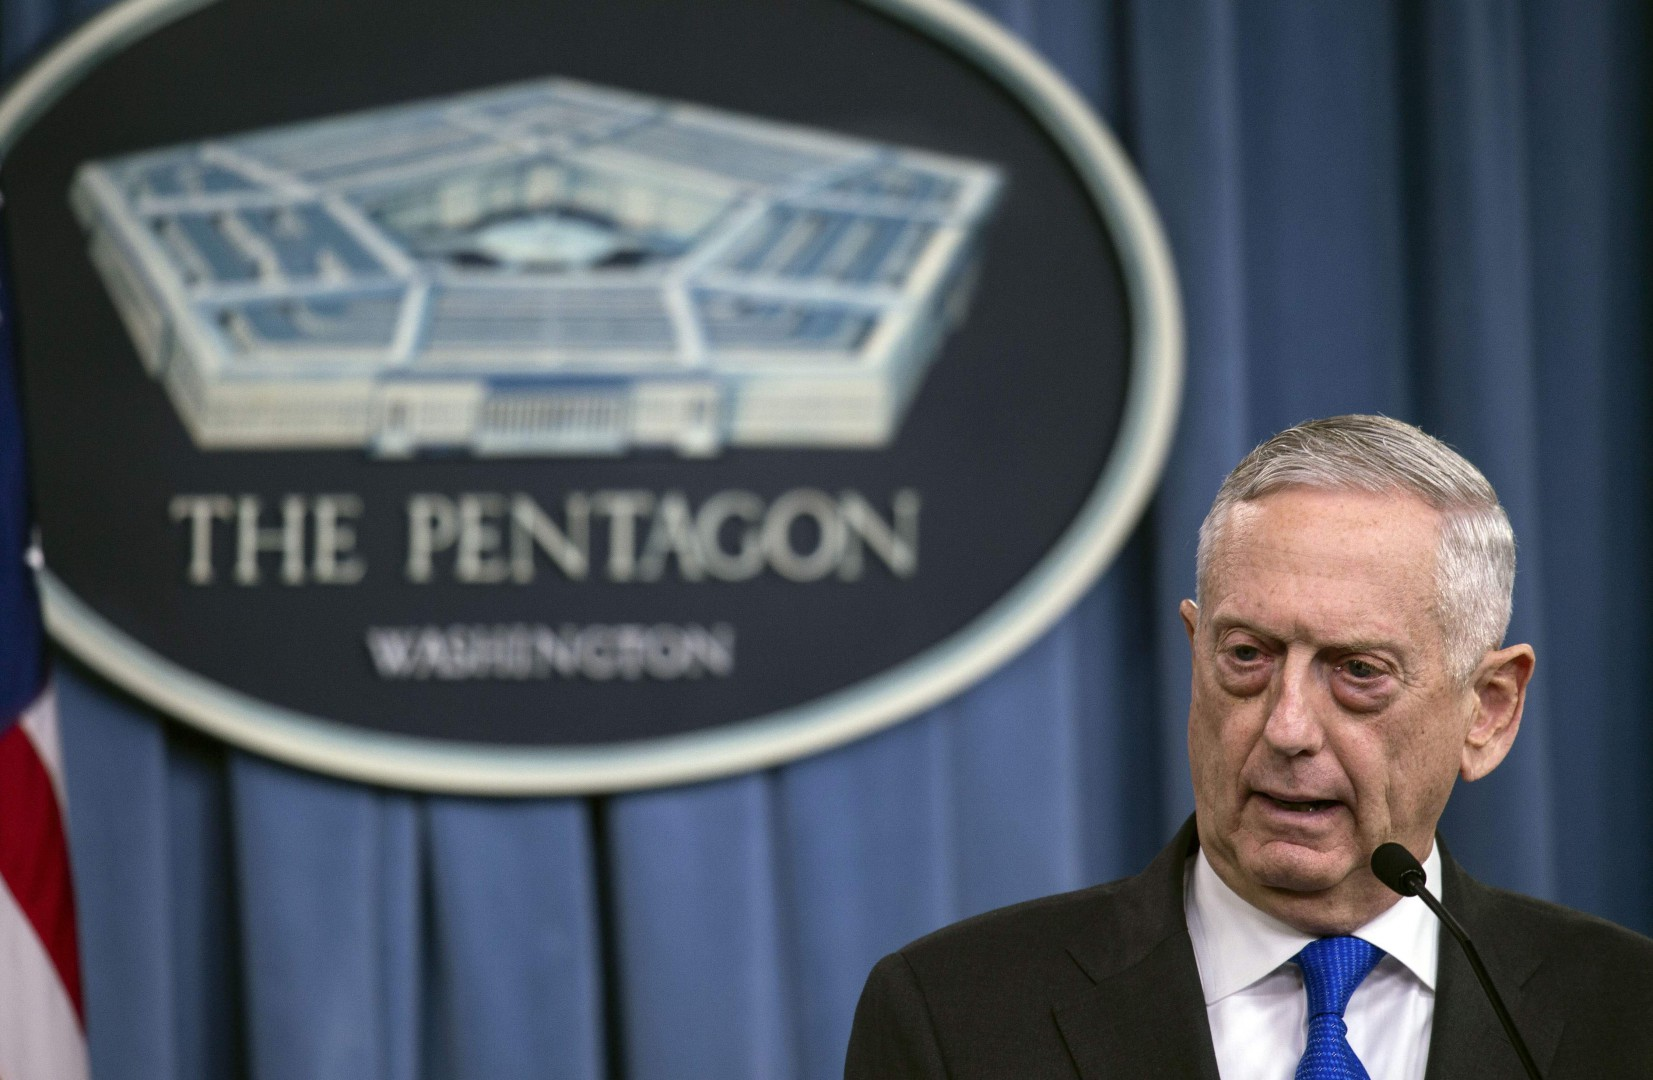 (FILES) In this file photo taken on August 28, 2018, US Defense Secretary Jim Mattis holds a press conference at the Pentagon in Washington, DC. - Mattis announced plans on September 11, 2018, to visit Macedonia, ahead of a referendum that could end a years-long spat with Greece over the country's name and pave the way for it to join NATO. (Photo by NICHOLAS KAMM / AFP)